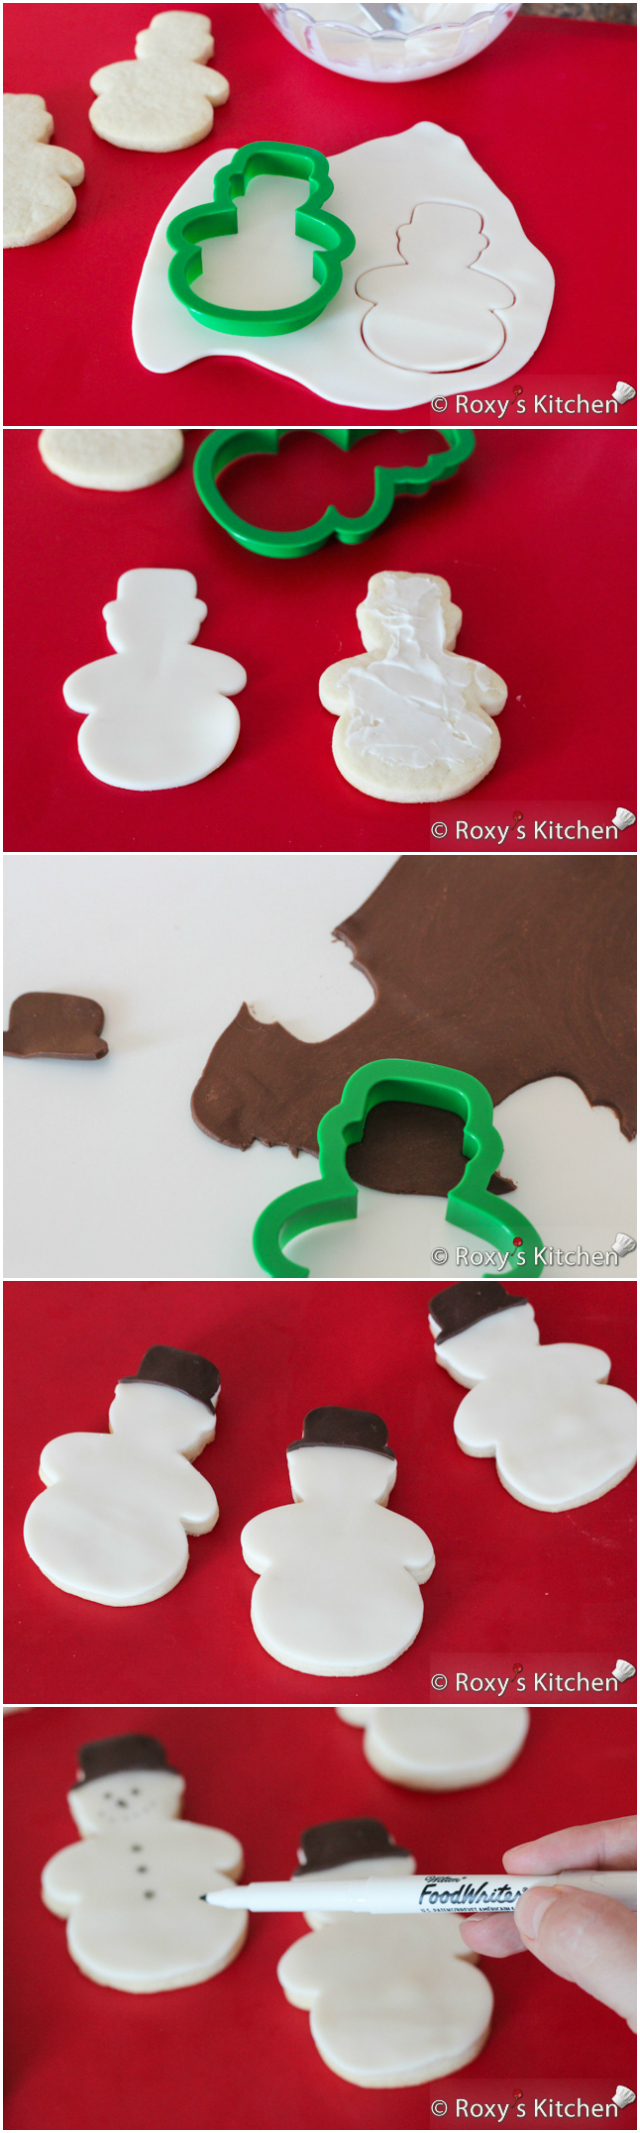 Christmas Sugar Cookies Covered with Modeling Chocolate - HO HO HO, snowmen, reindeer, Christmas trees, stockings & presents | Roxy's Kitchen